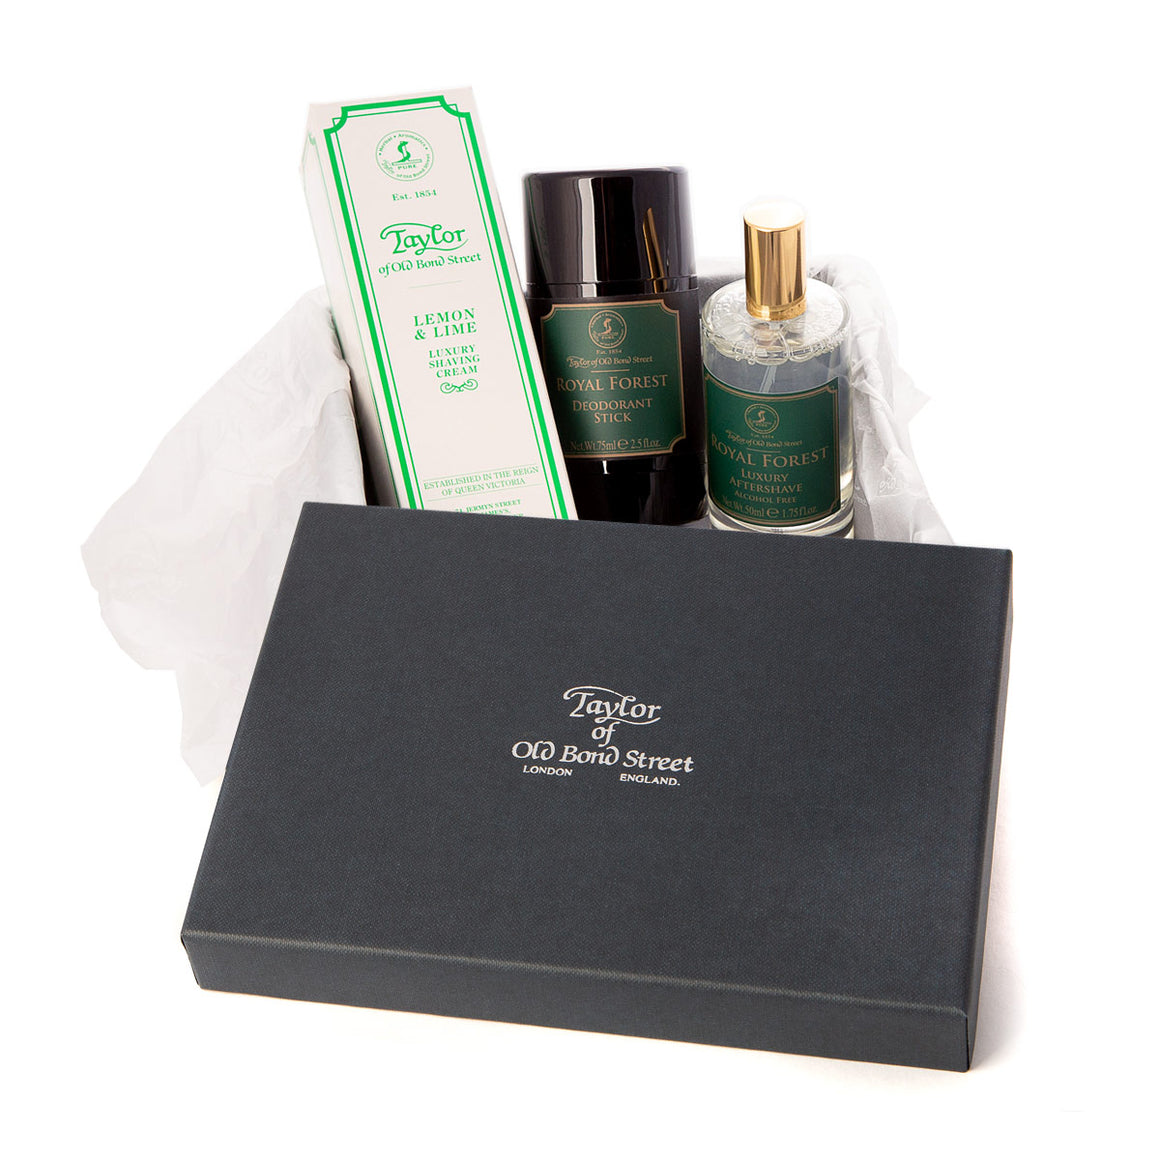 Toiletries and Fragrance Gift Set